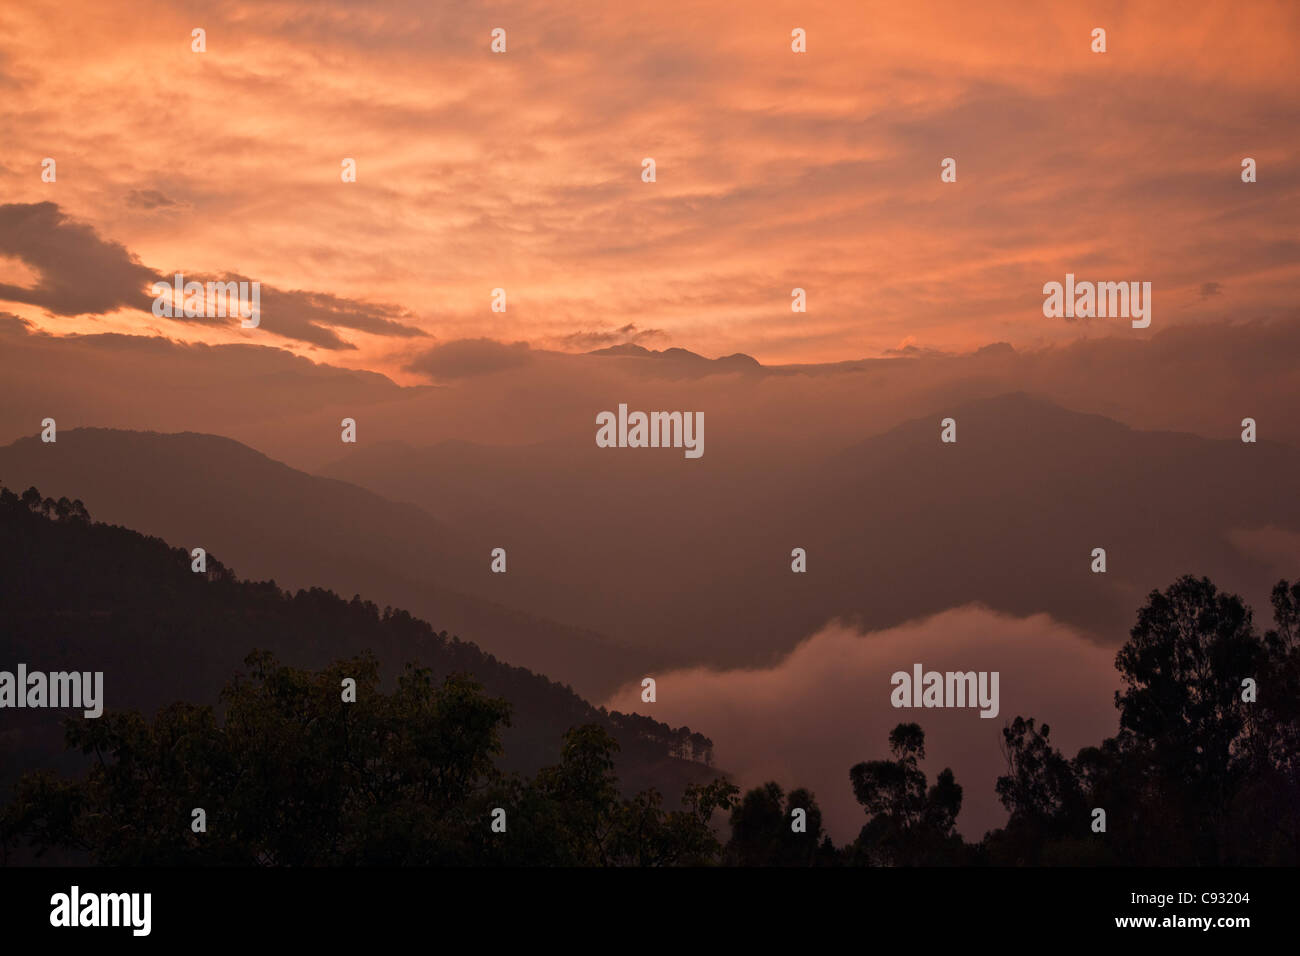 Sunset over the mountains surrounding the hilltop town of Mongar. - Stock Image